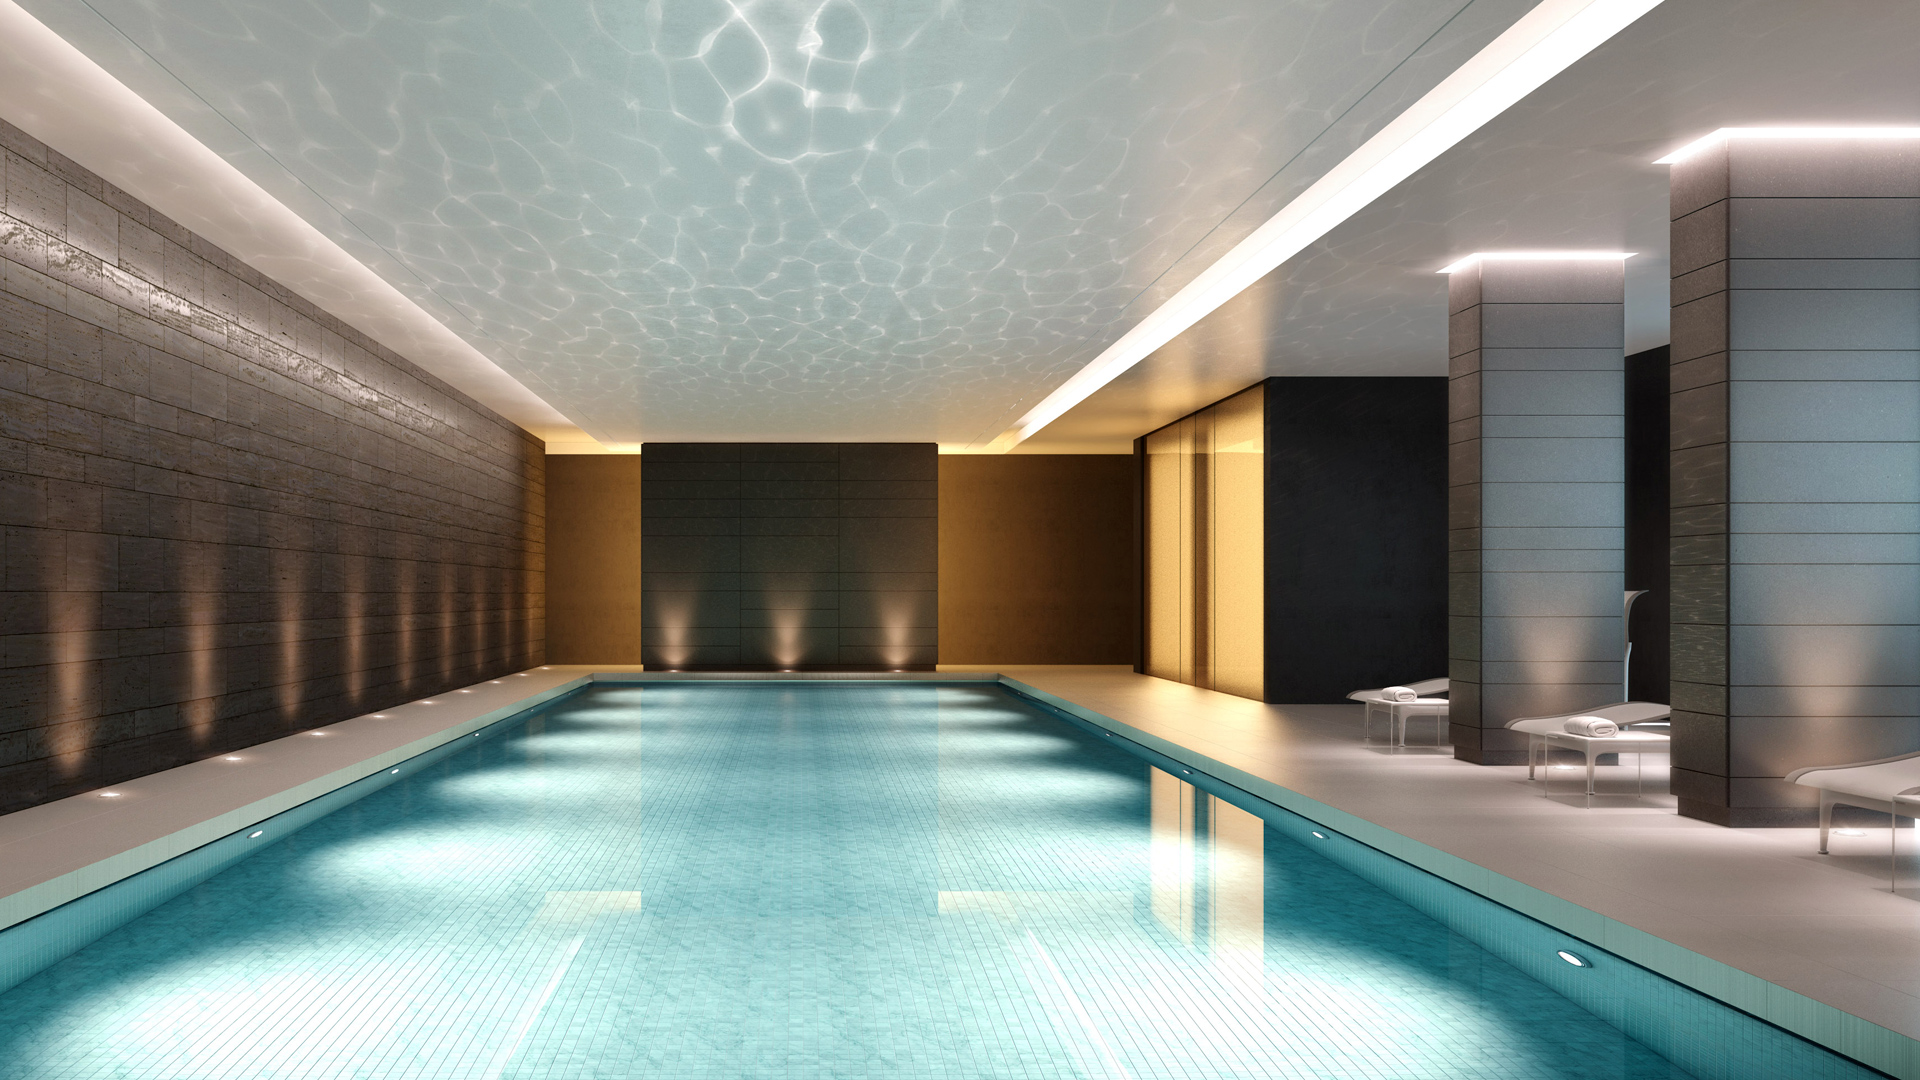 Basement swimming pool design magnificent best 46 indoor for Basement swimming pool ideas